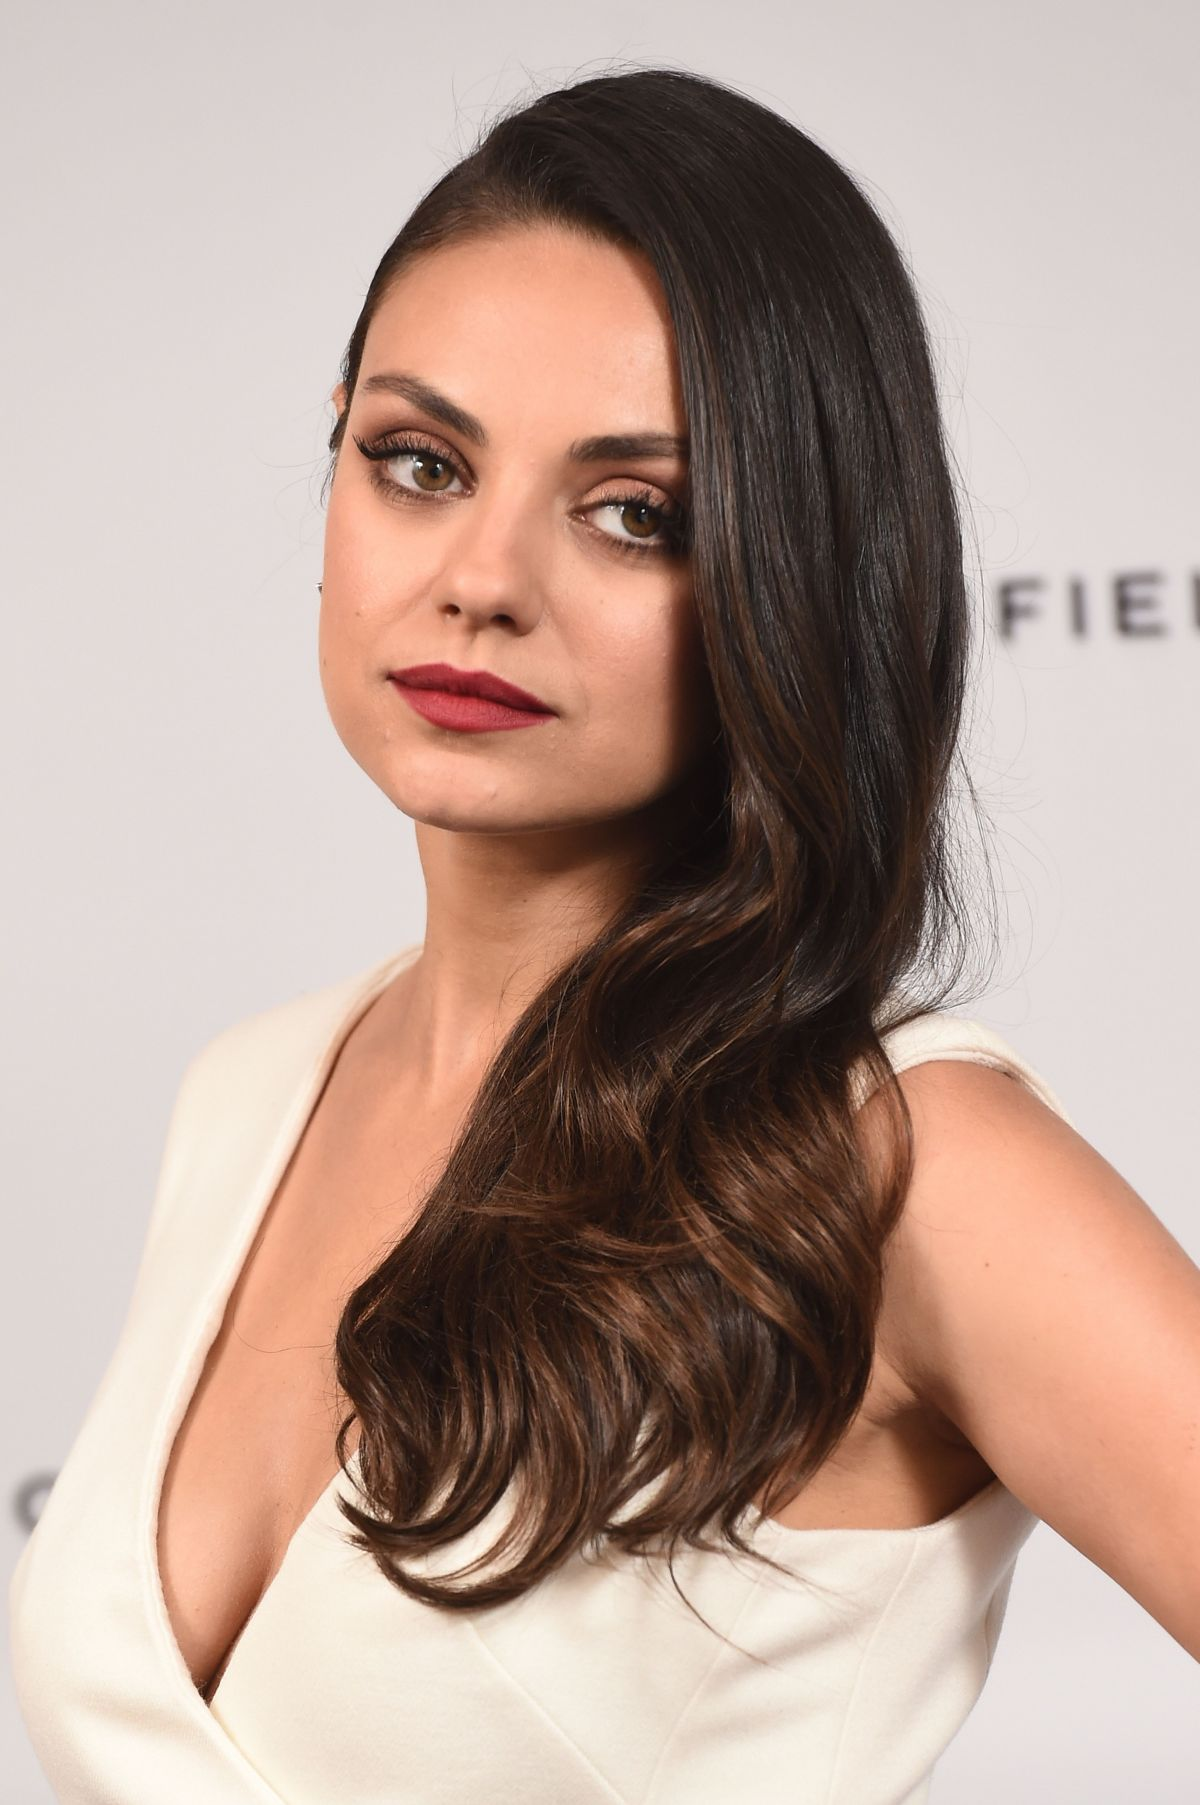 Mila Kunis At Gemfields Photo Call - Celebzz - Celebzz Mila Kunis